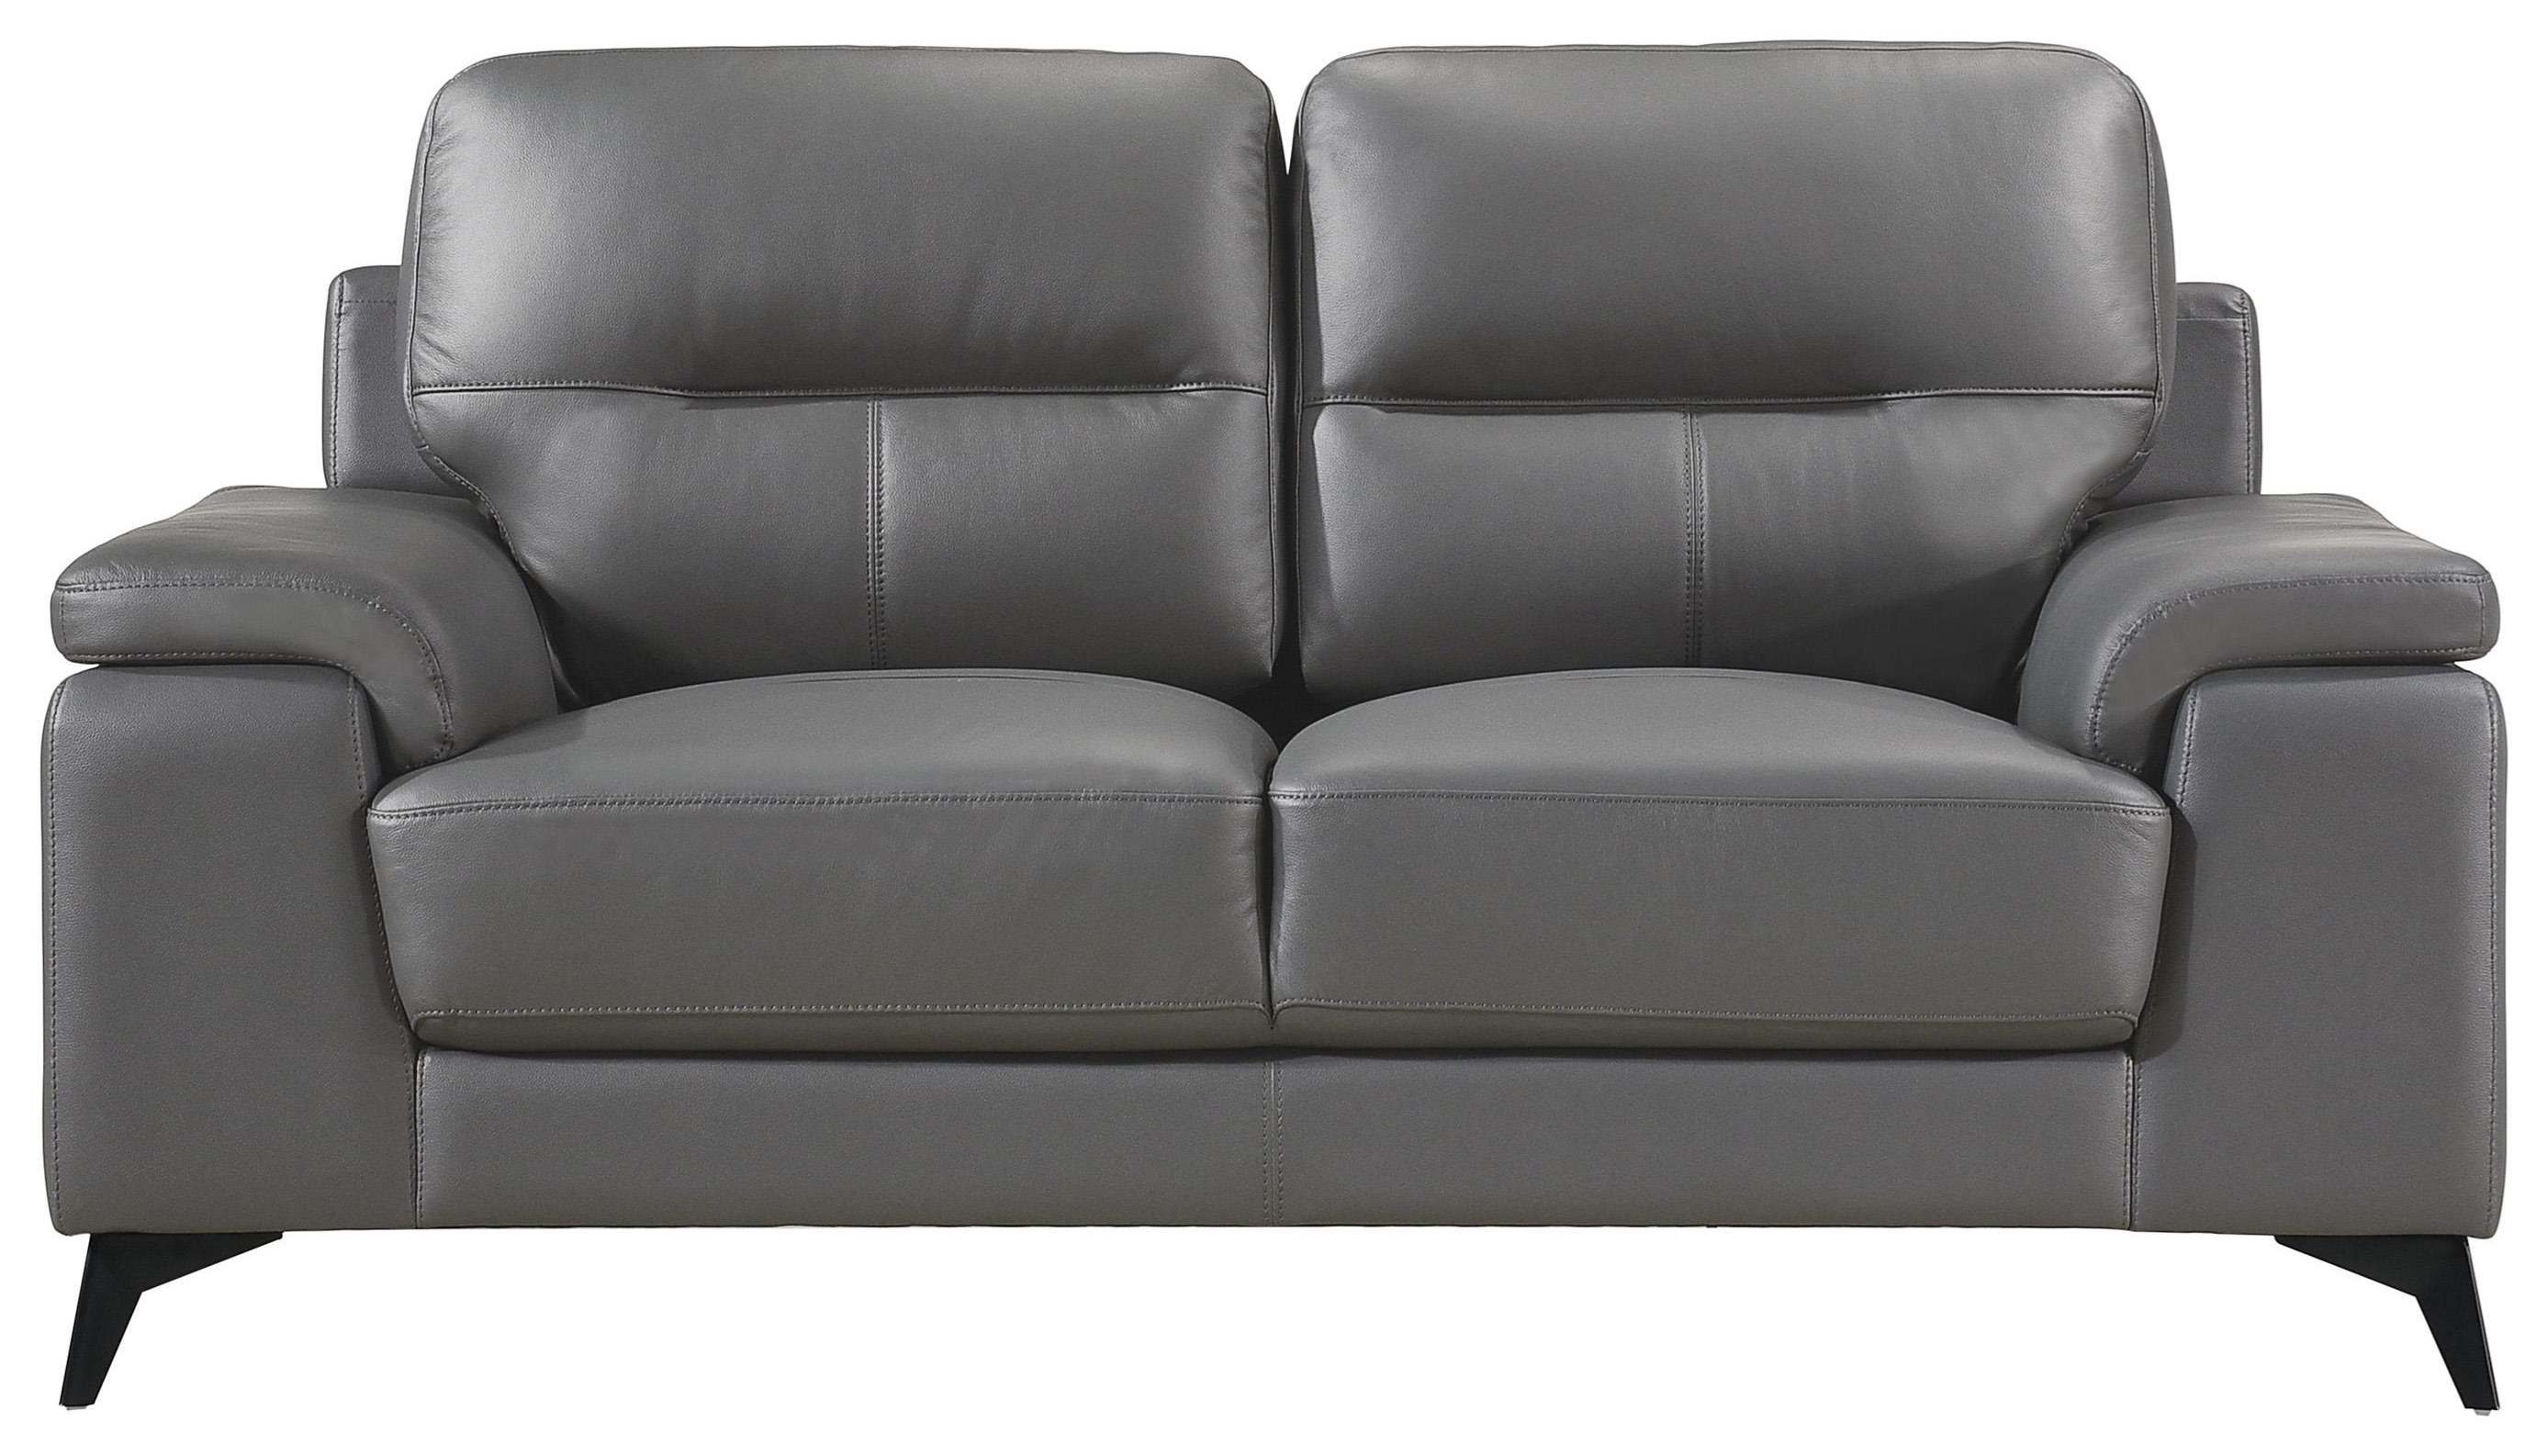 Mischa Contemporary Leather Match Loveseat by Homelegance at Darvin Furniture